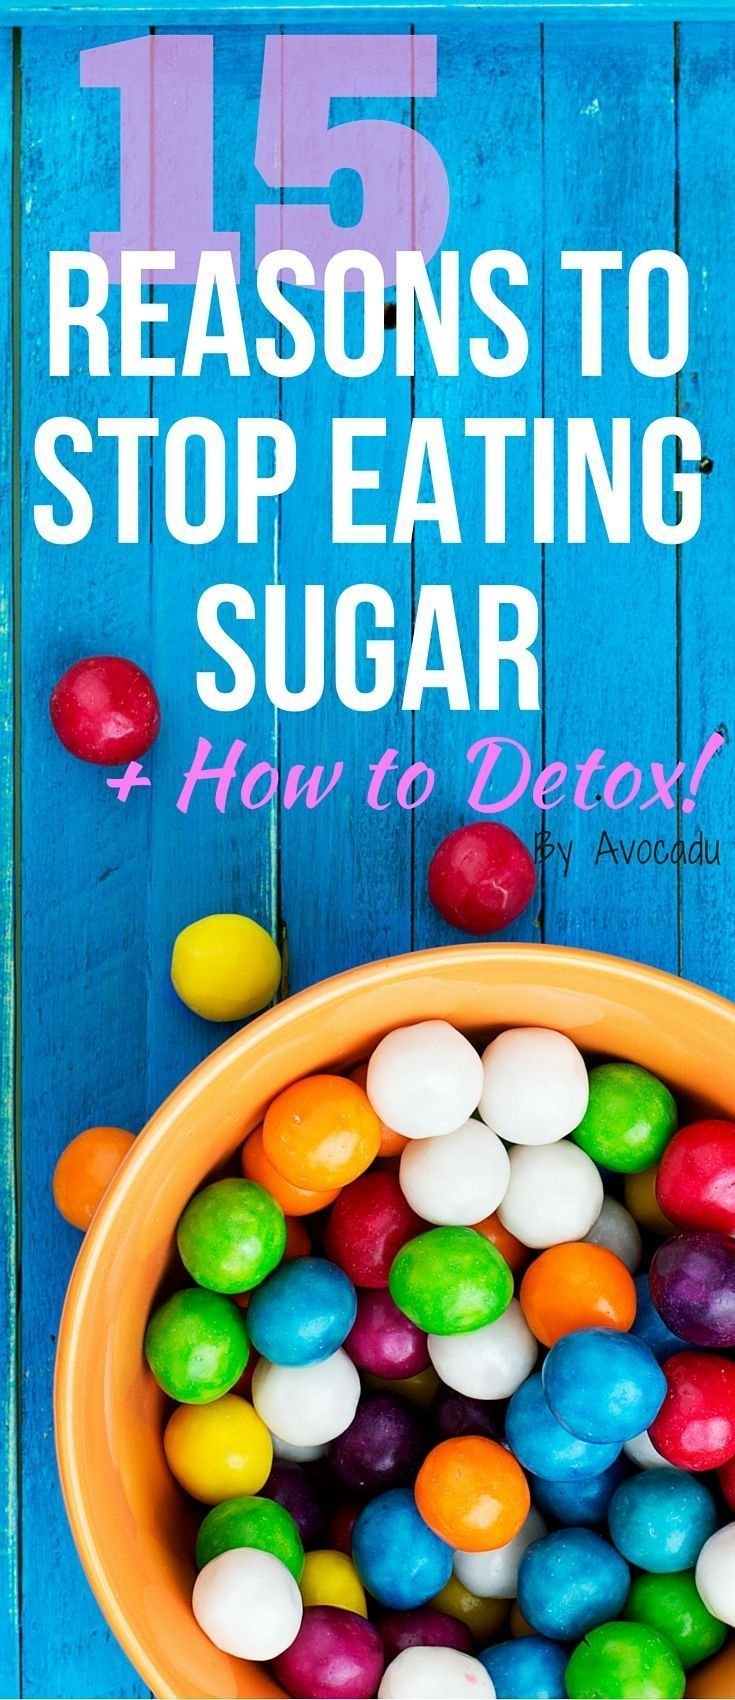 How to Stop Eating Sugar | Sugar Detox | Detox Cleanse | Weight Loss | http://avocadu.com/15-reasons-stop-eating-sugar-how-to-detox/